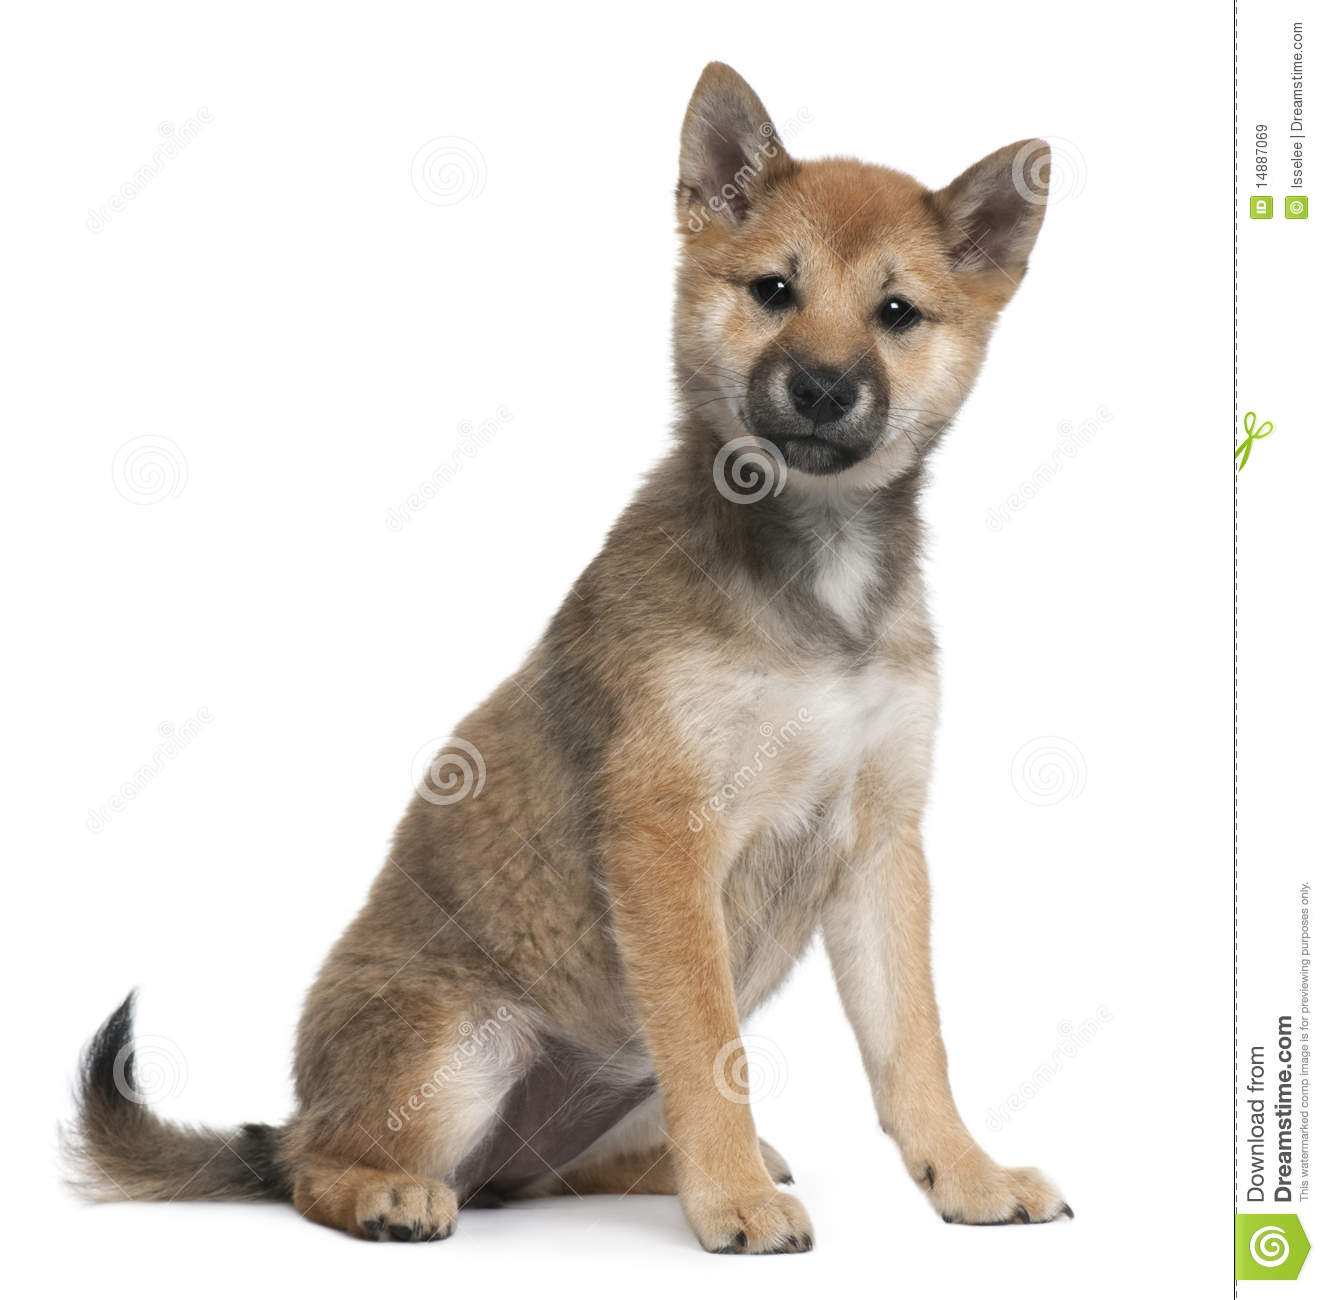 shiba inu puppy 5 months old sitting royalty free stock